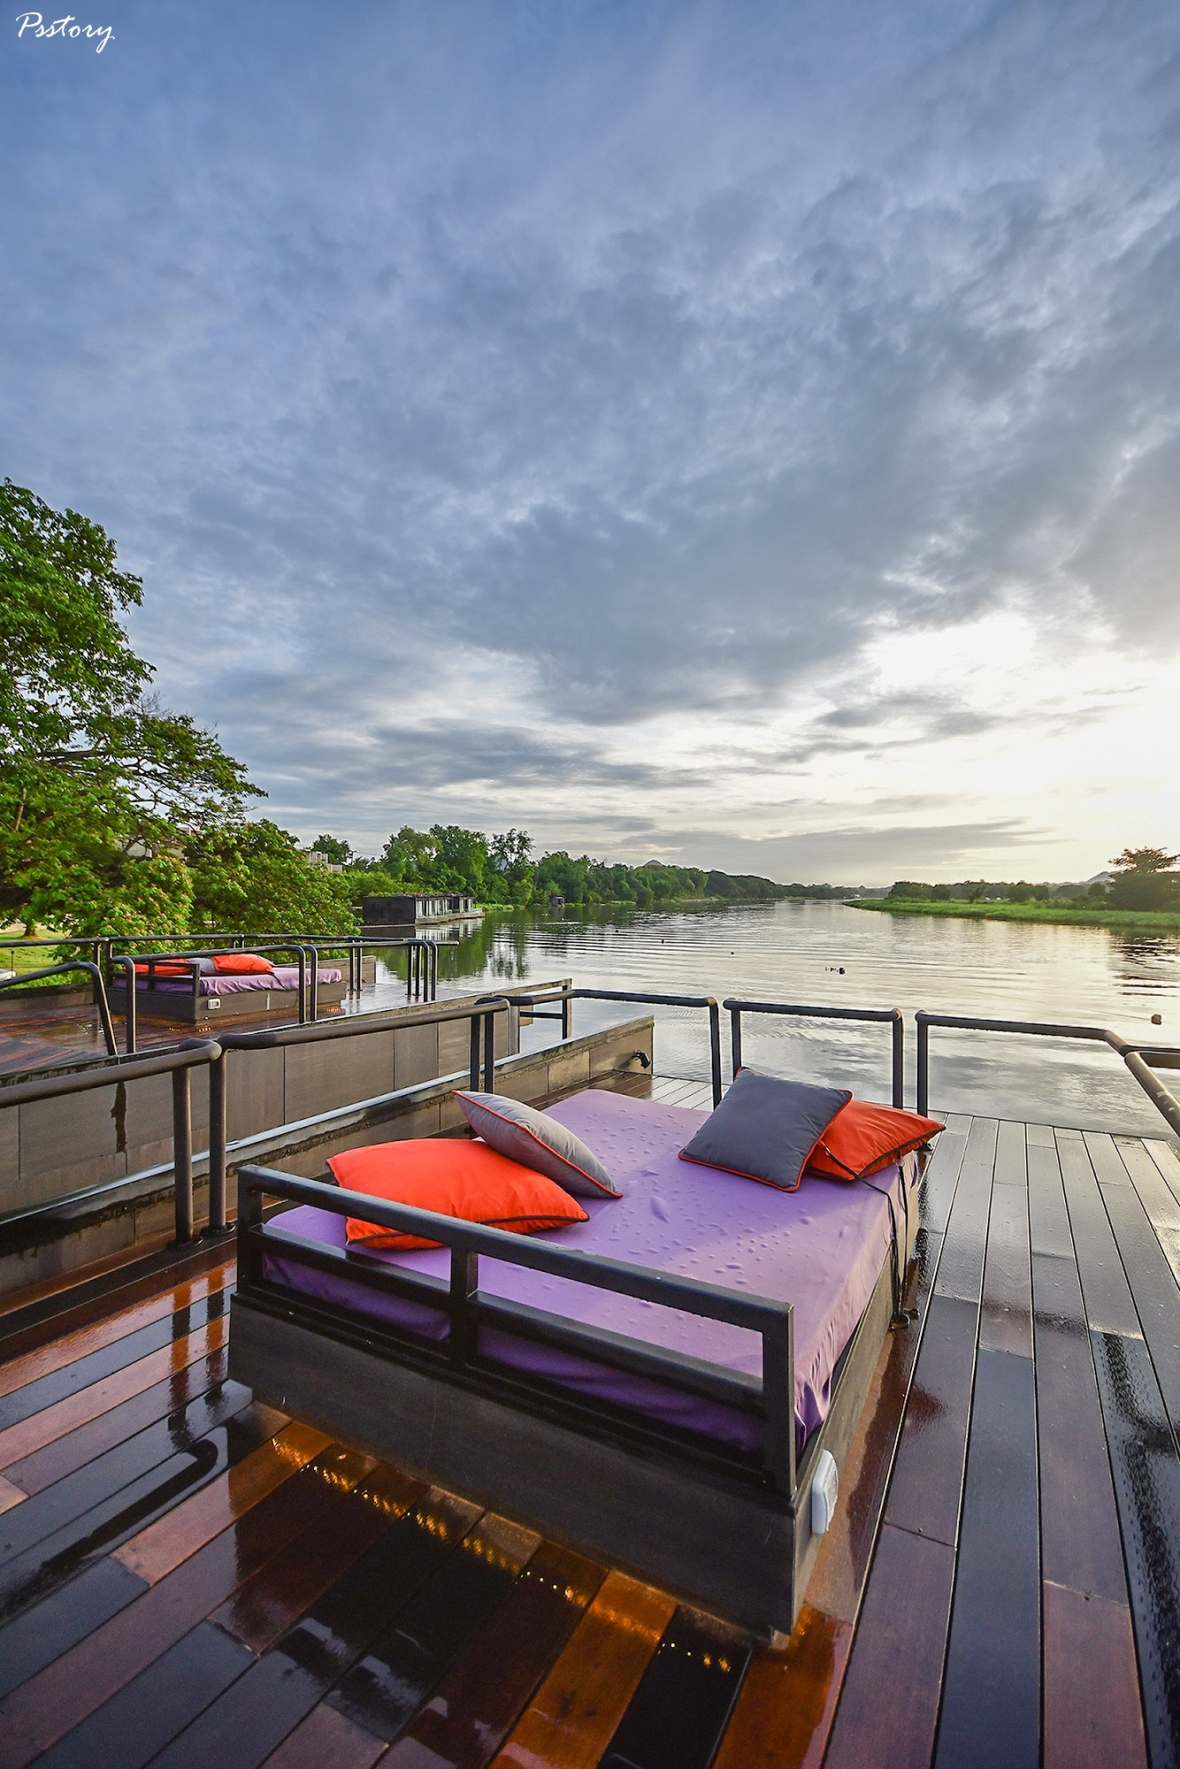 X2 River Kwai Resort (106)